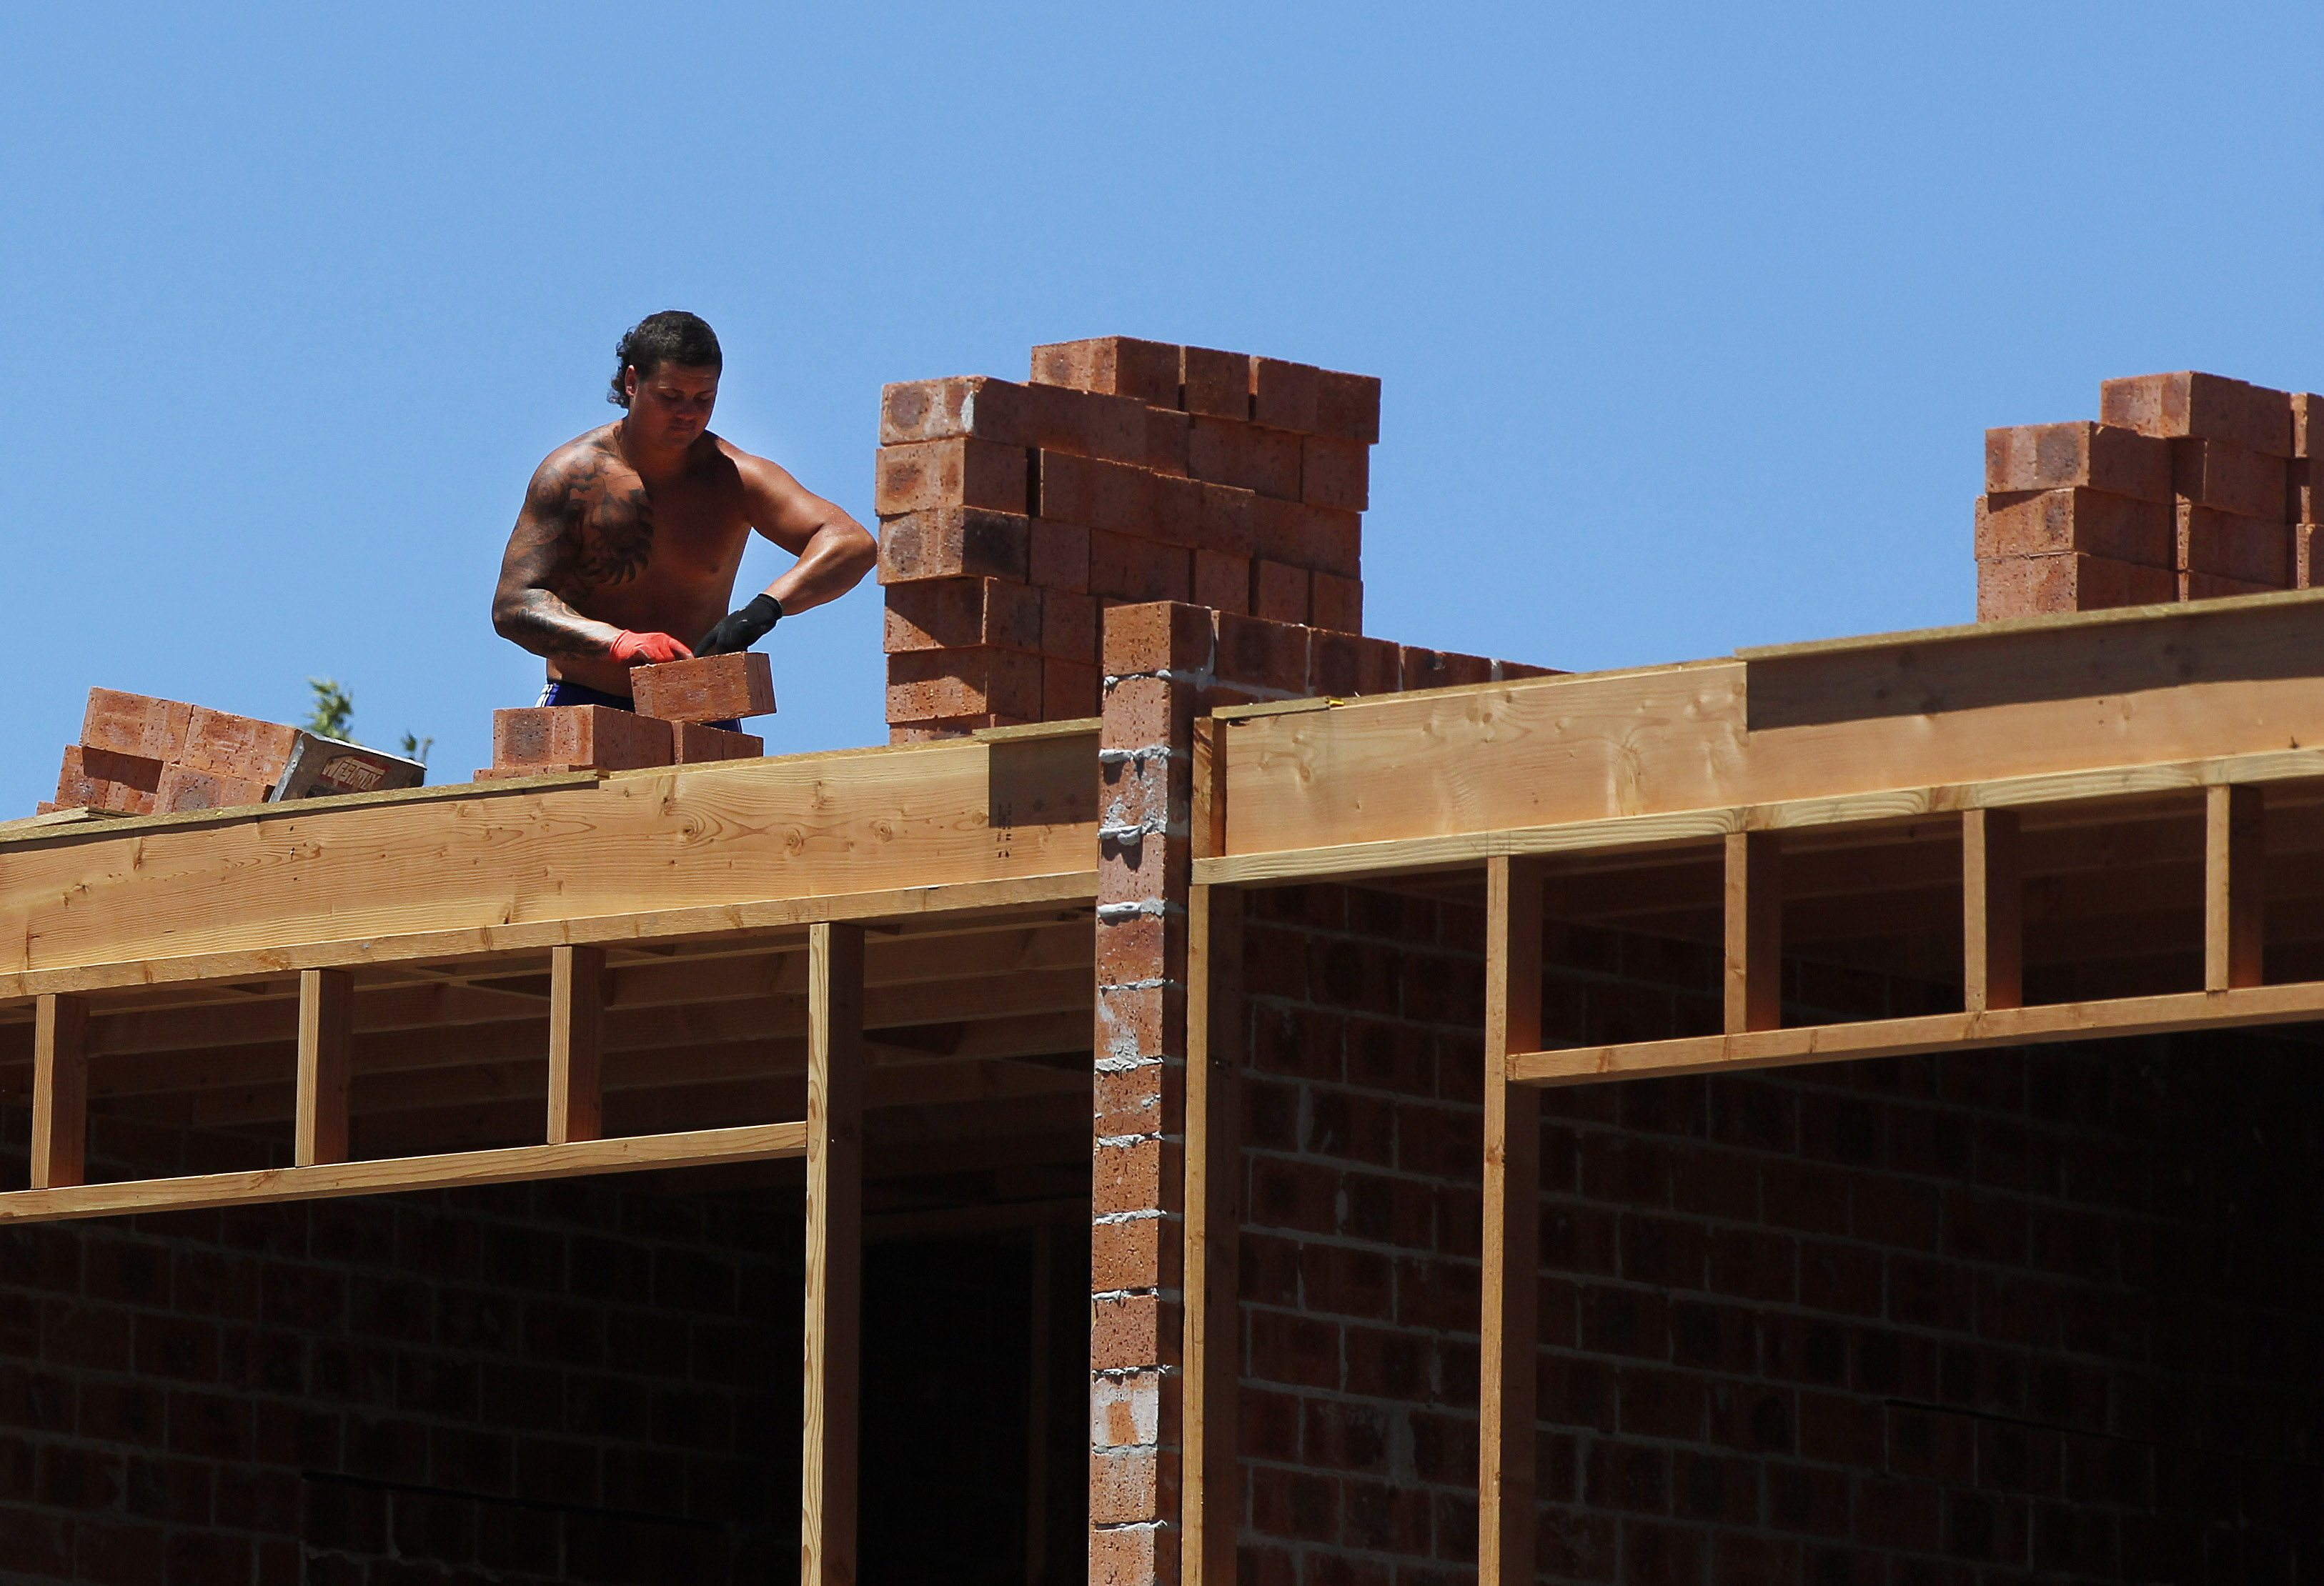 A worker carries bricks on top of a new apartment construction site. REUTERS/Daniel Munoz